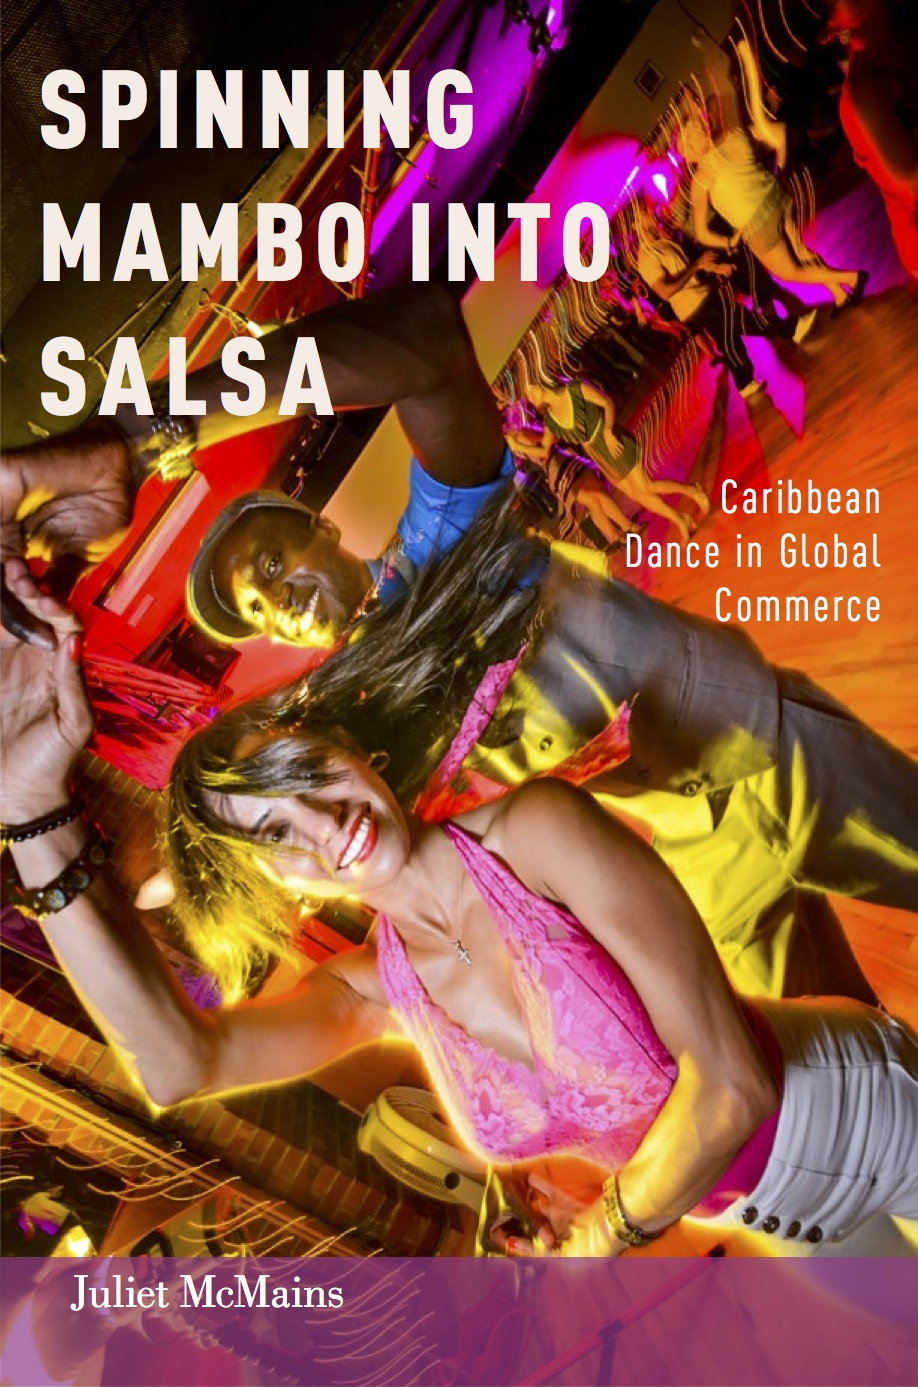 - This history of salsa dance in New York, Los Angeles, and Miami examines how commercialized salsa in the 1990s departed from 1950s mambo. Based on over 100 oral history interviews, archival research, and ethnographic participant observation, the book is rich with quotes from practitioners.